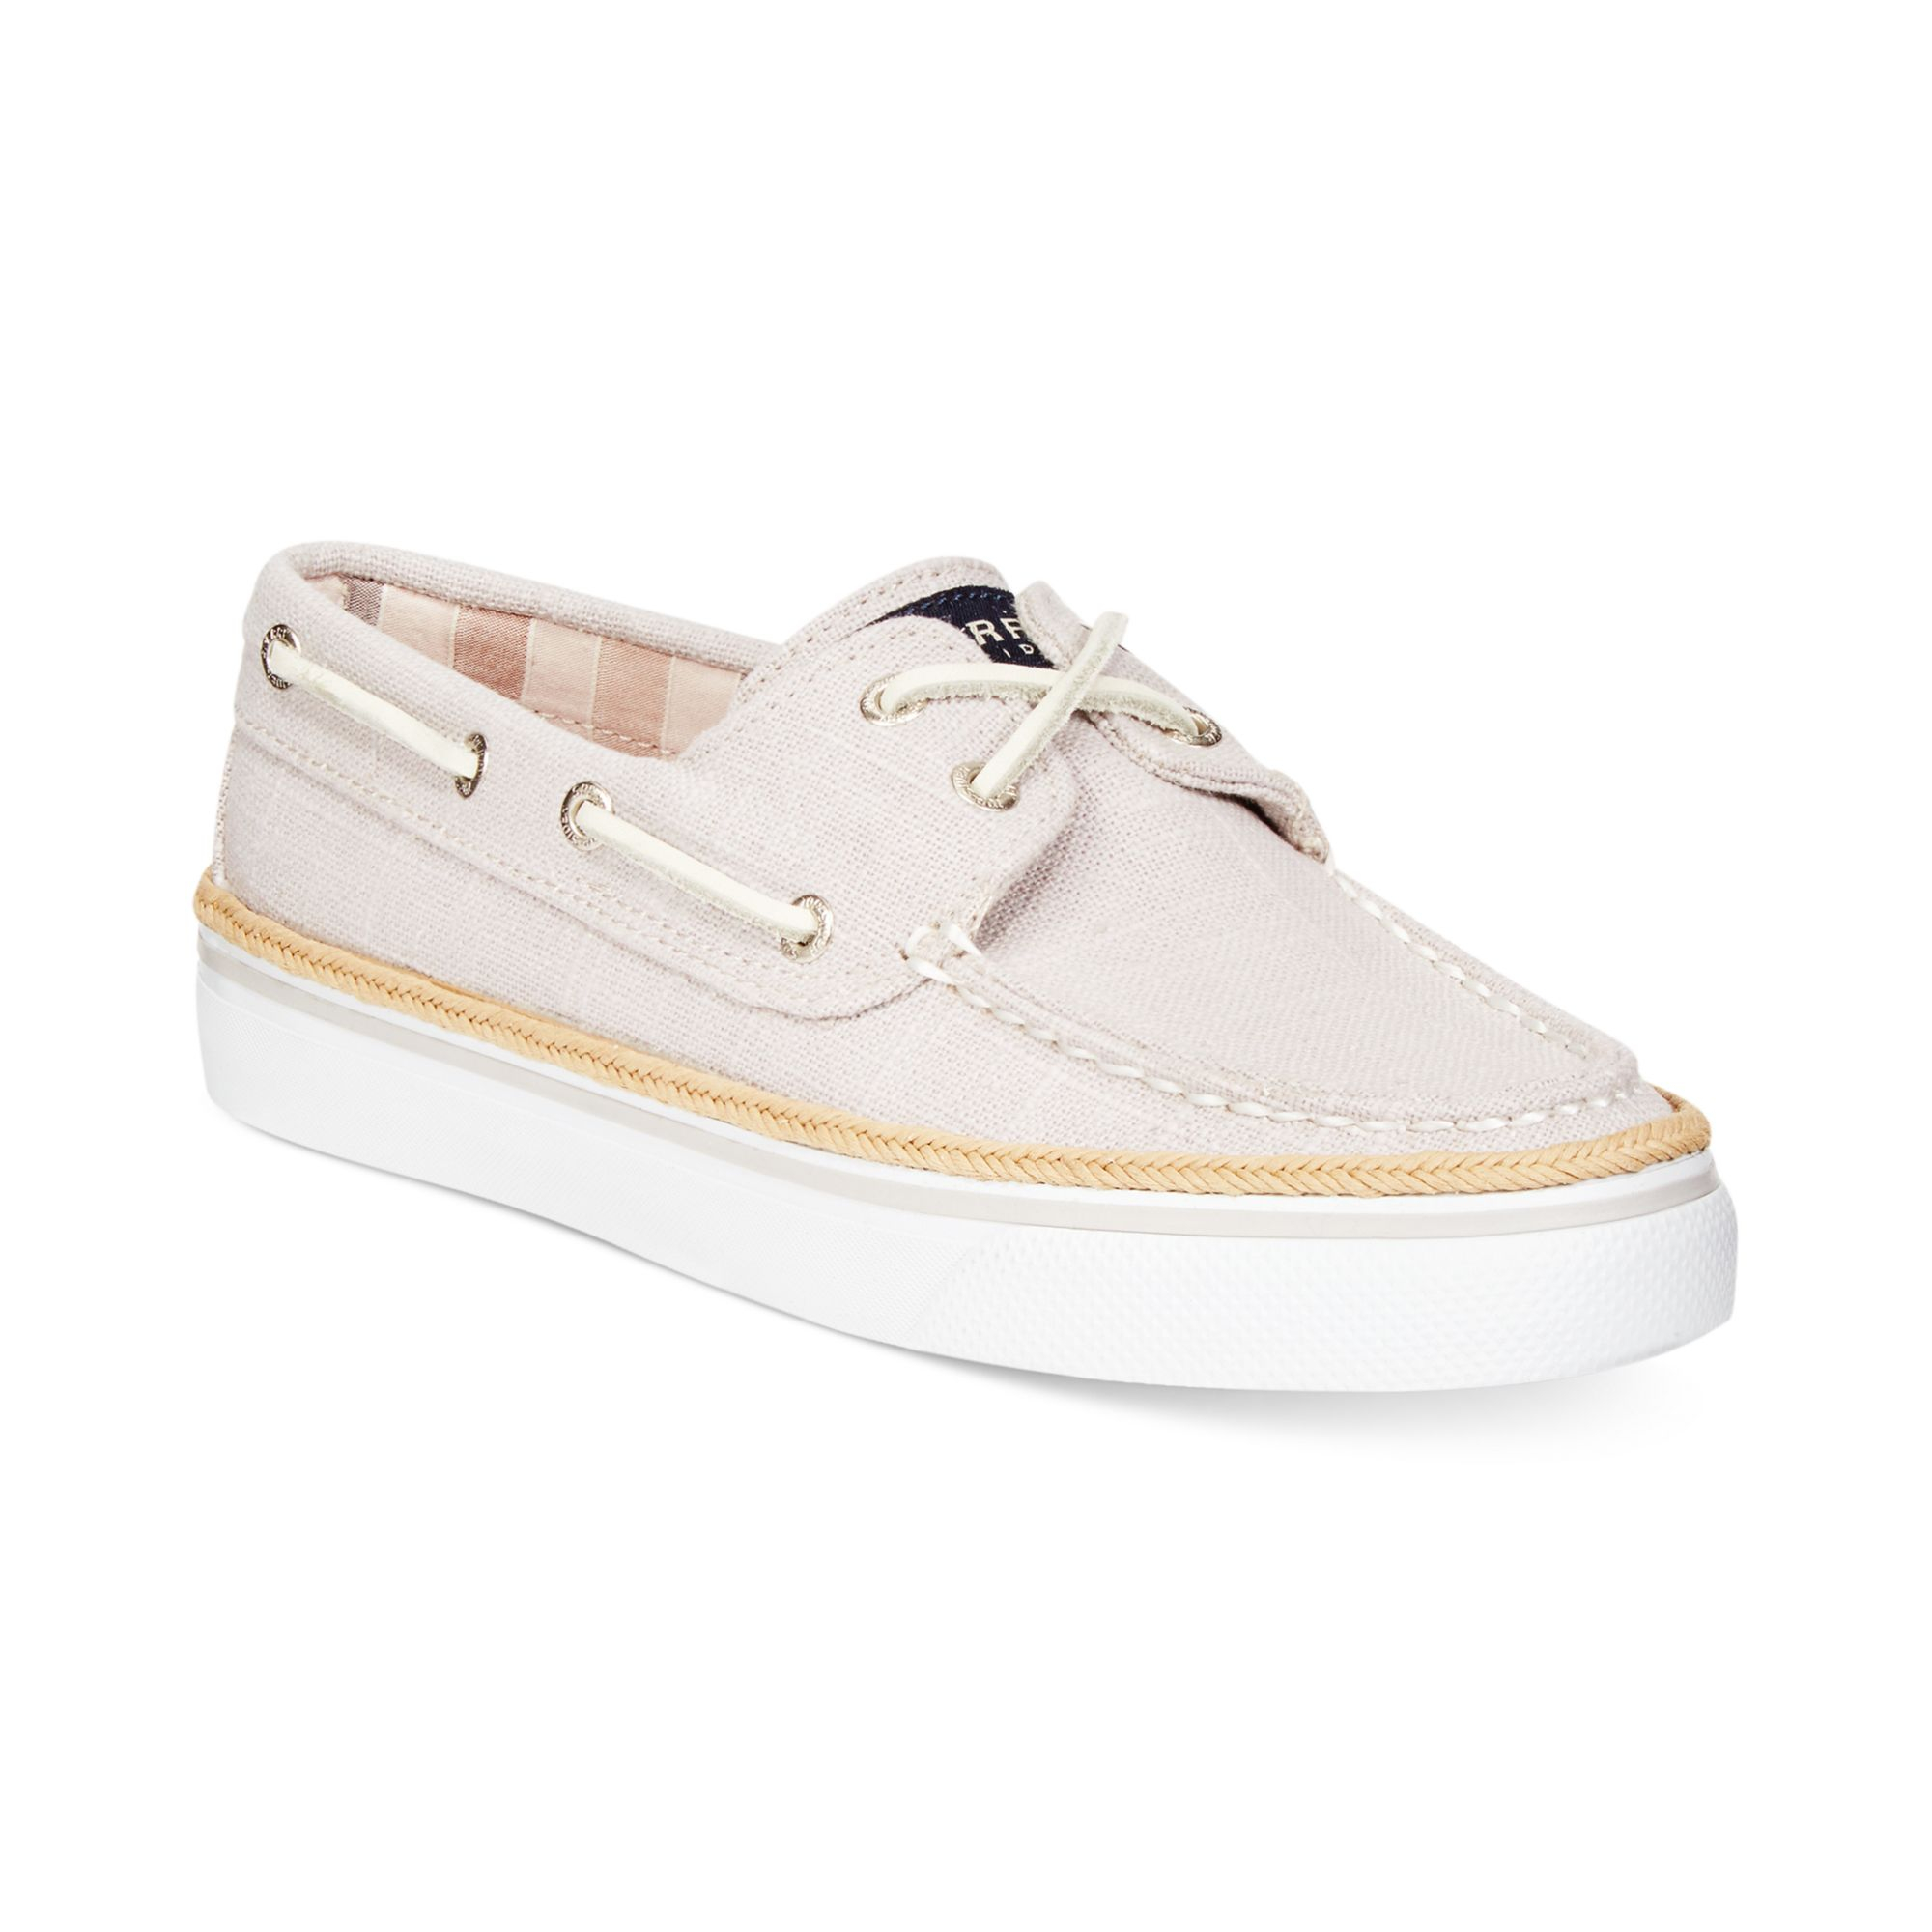 sperry top sider womens bahama boat shoes in gray lyst